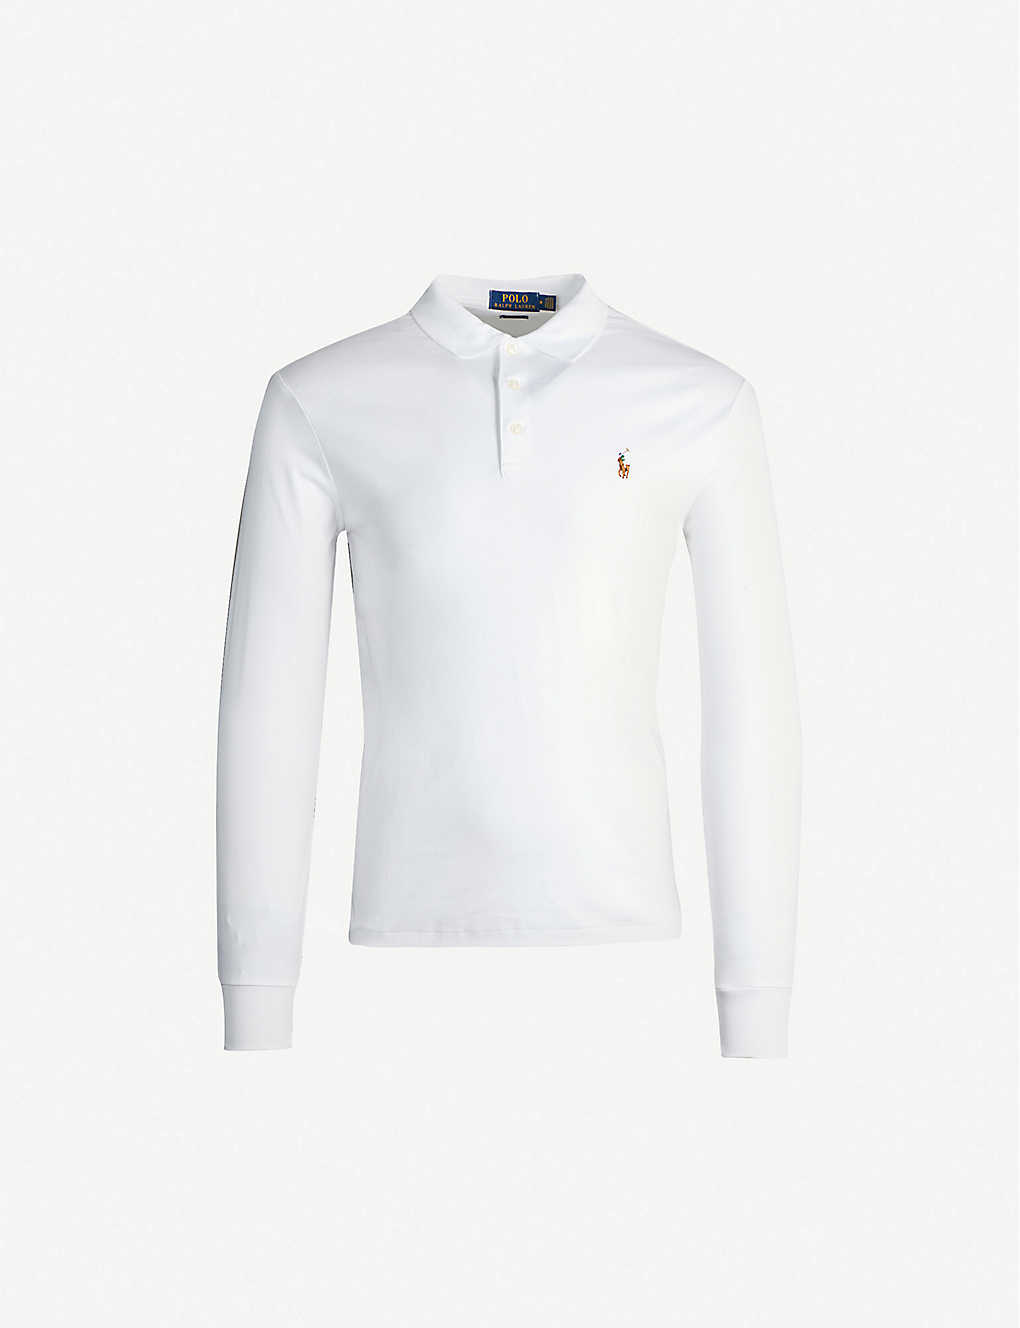 586599ecce4 POLO RALPH LAUREN - Logo-embroidered long-sleeved cotton-jersey polo ...